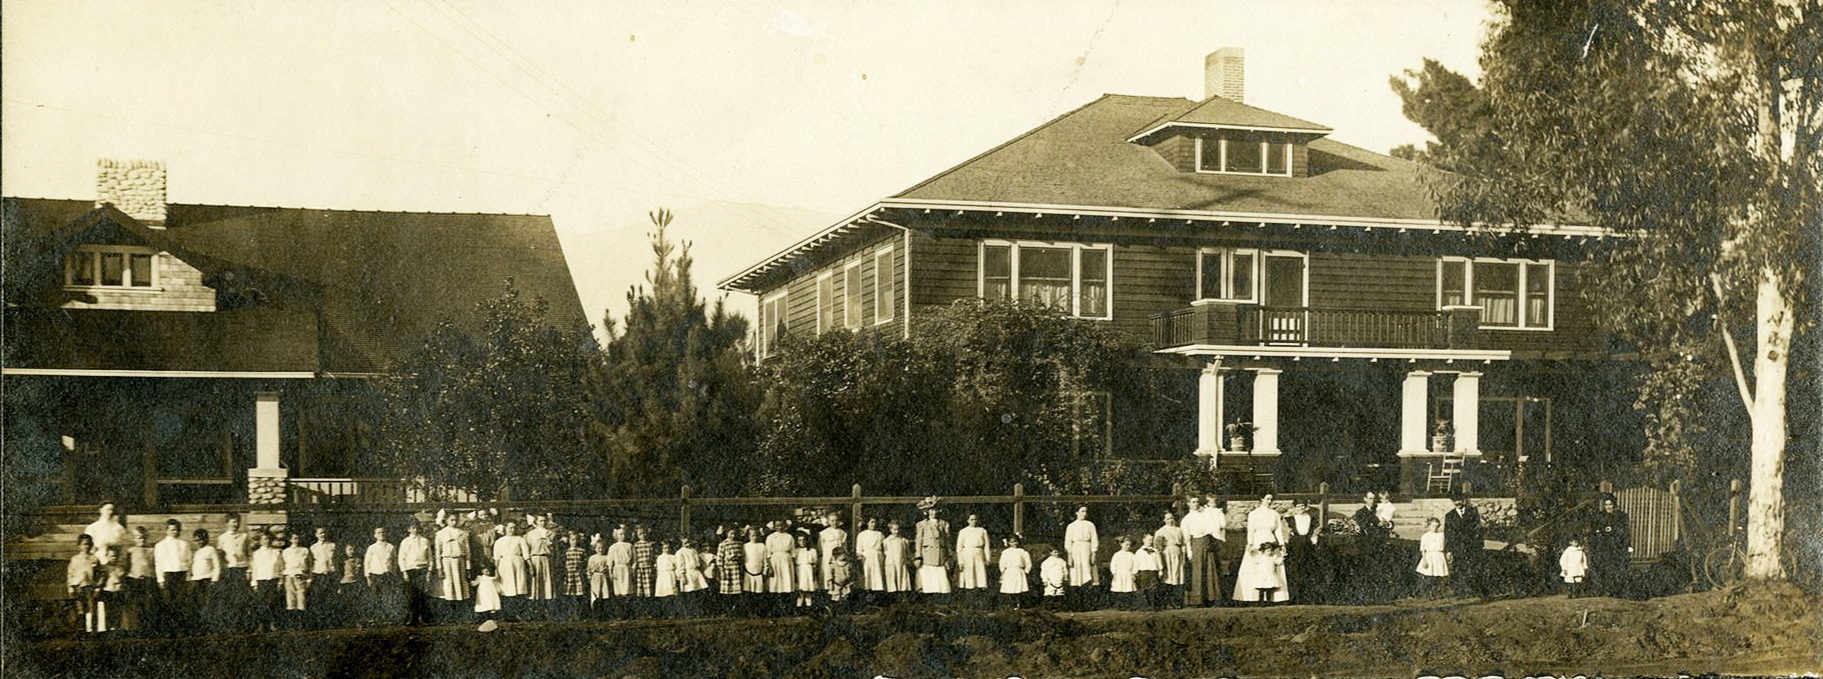 Pasadena Childrens Training School, where Evelyn, Alice and Jesse Hunt were enrolled, about 1909. (Alice A. Thurman Collection)